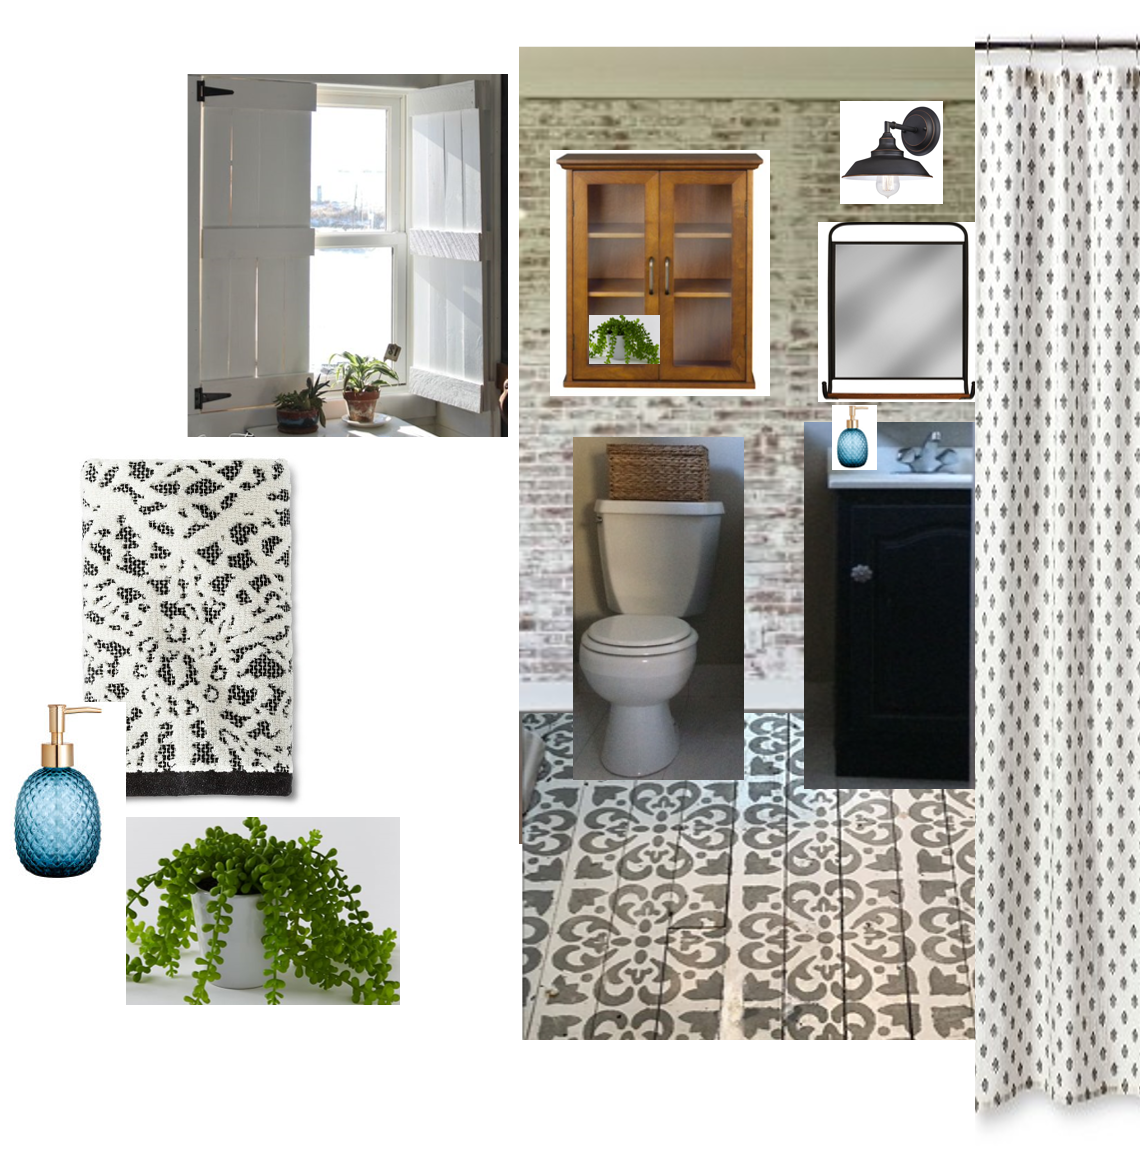 Bathroom Design Board master bathroom design board – back to blueberry hill